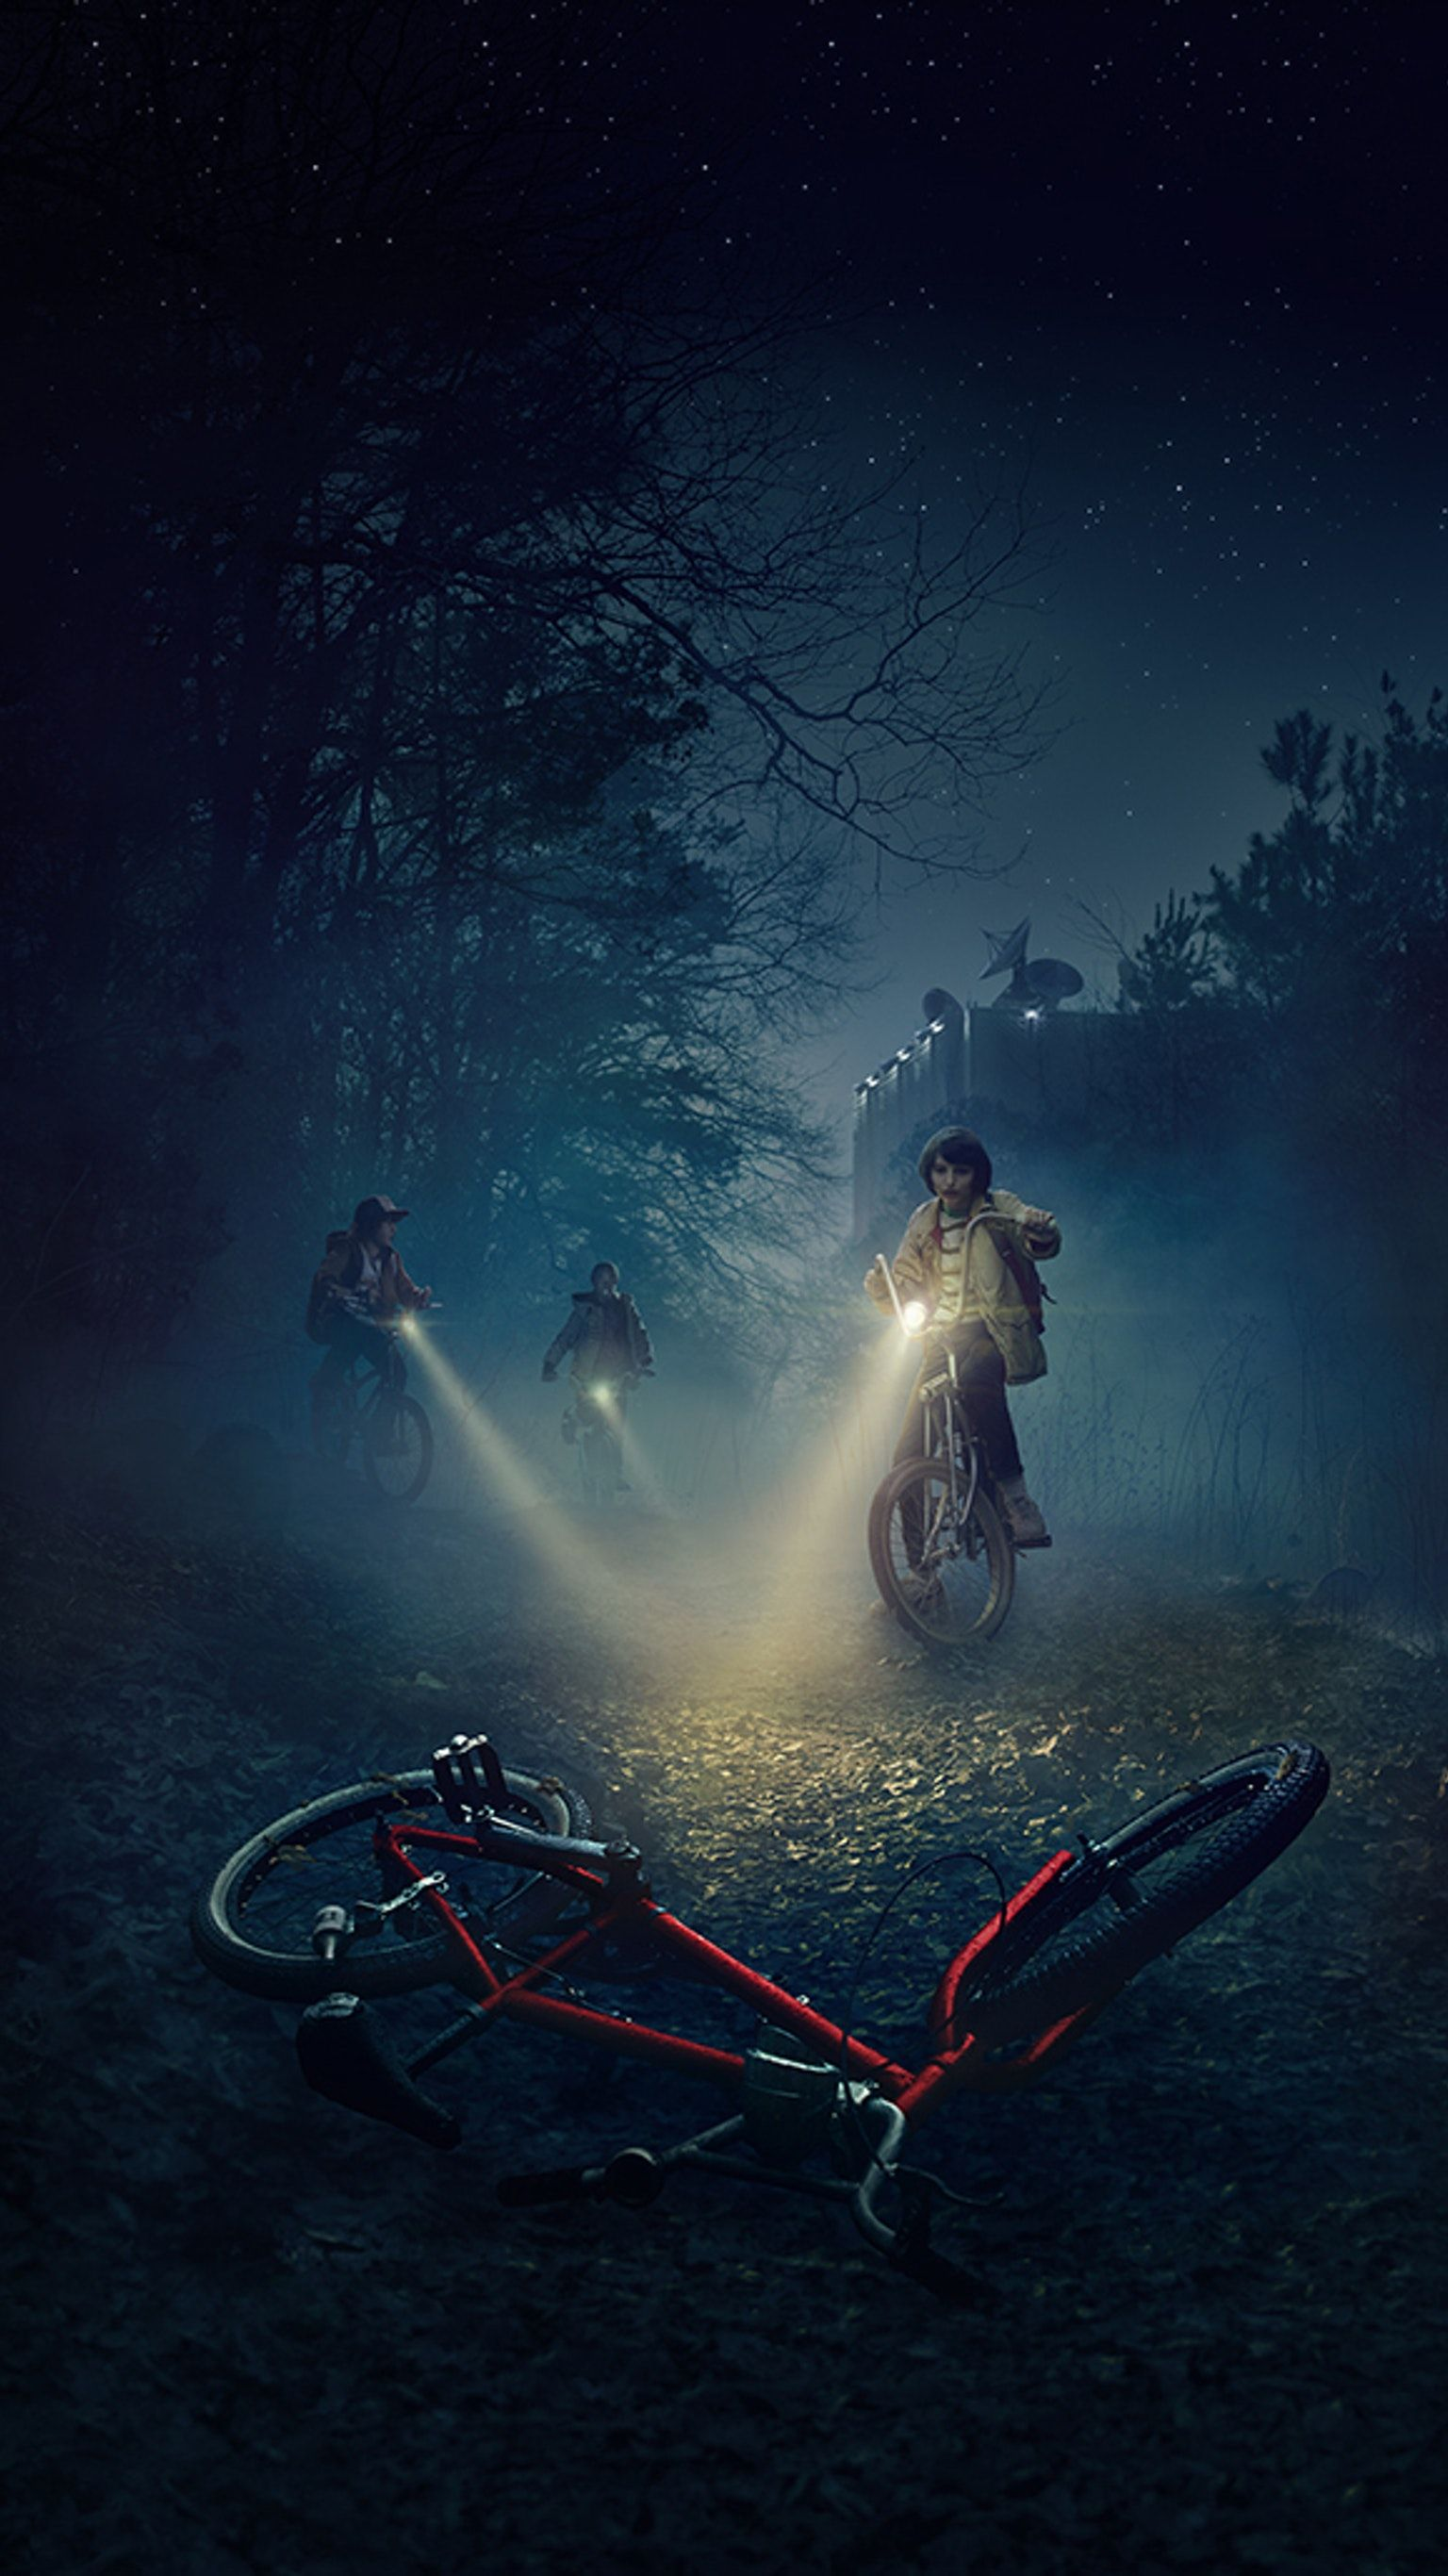 Stranger Things Phone Wallpaper Nel 2019 Porco Dio Sfondi Per